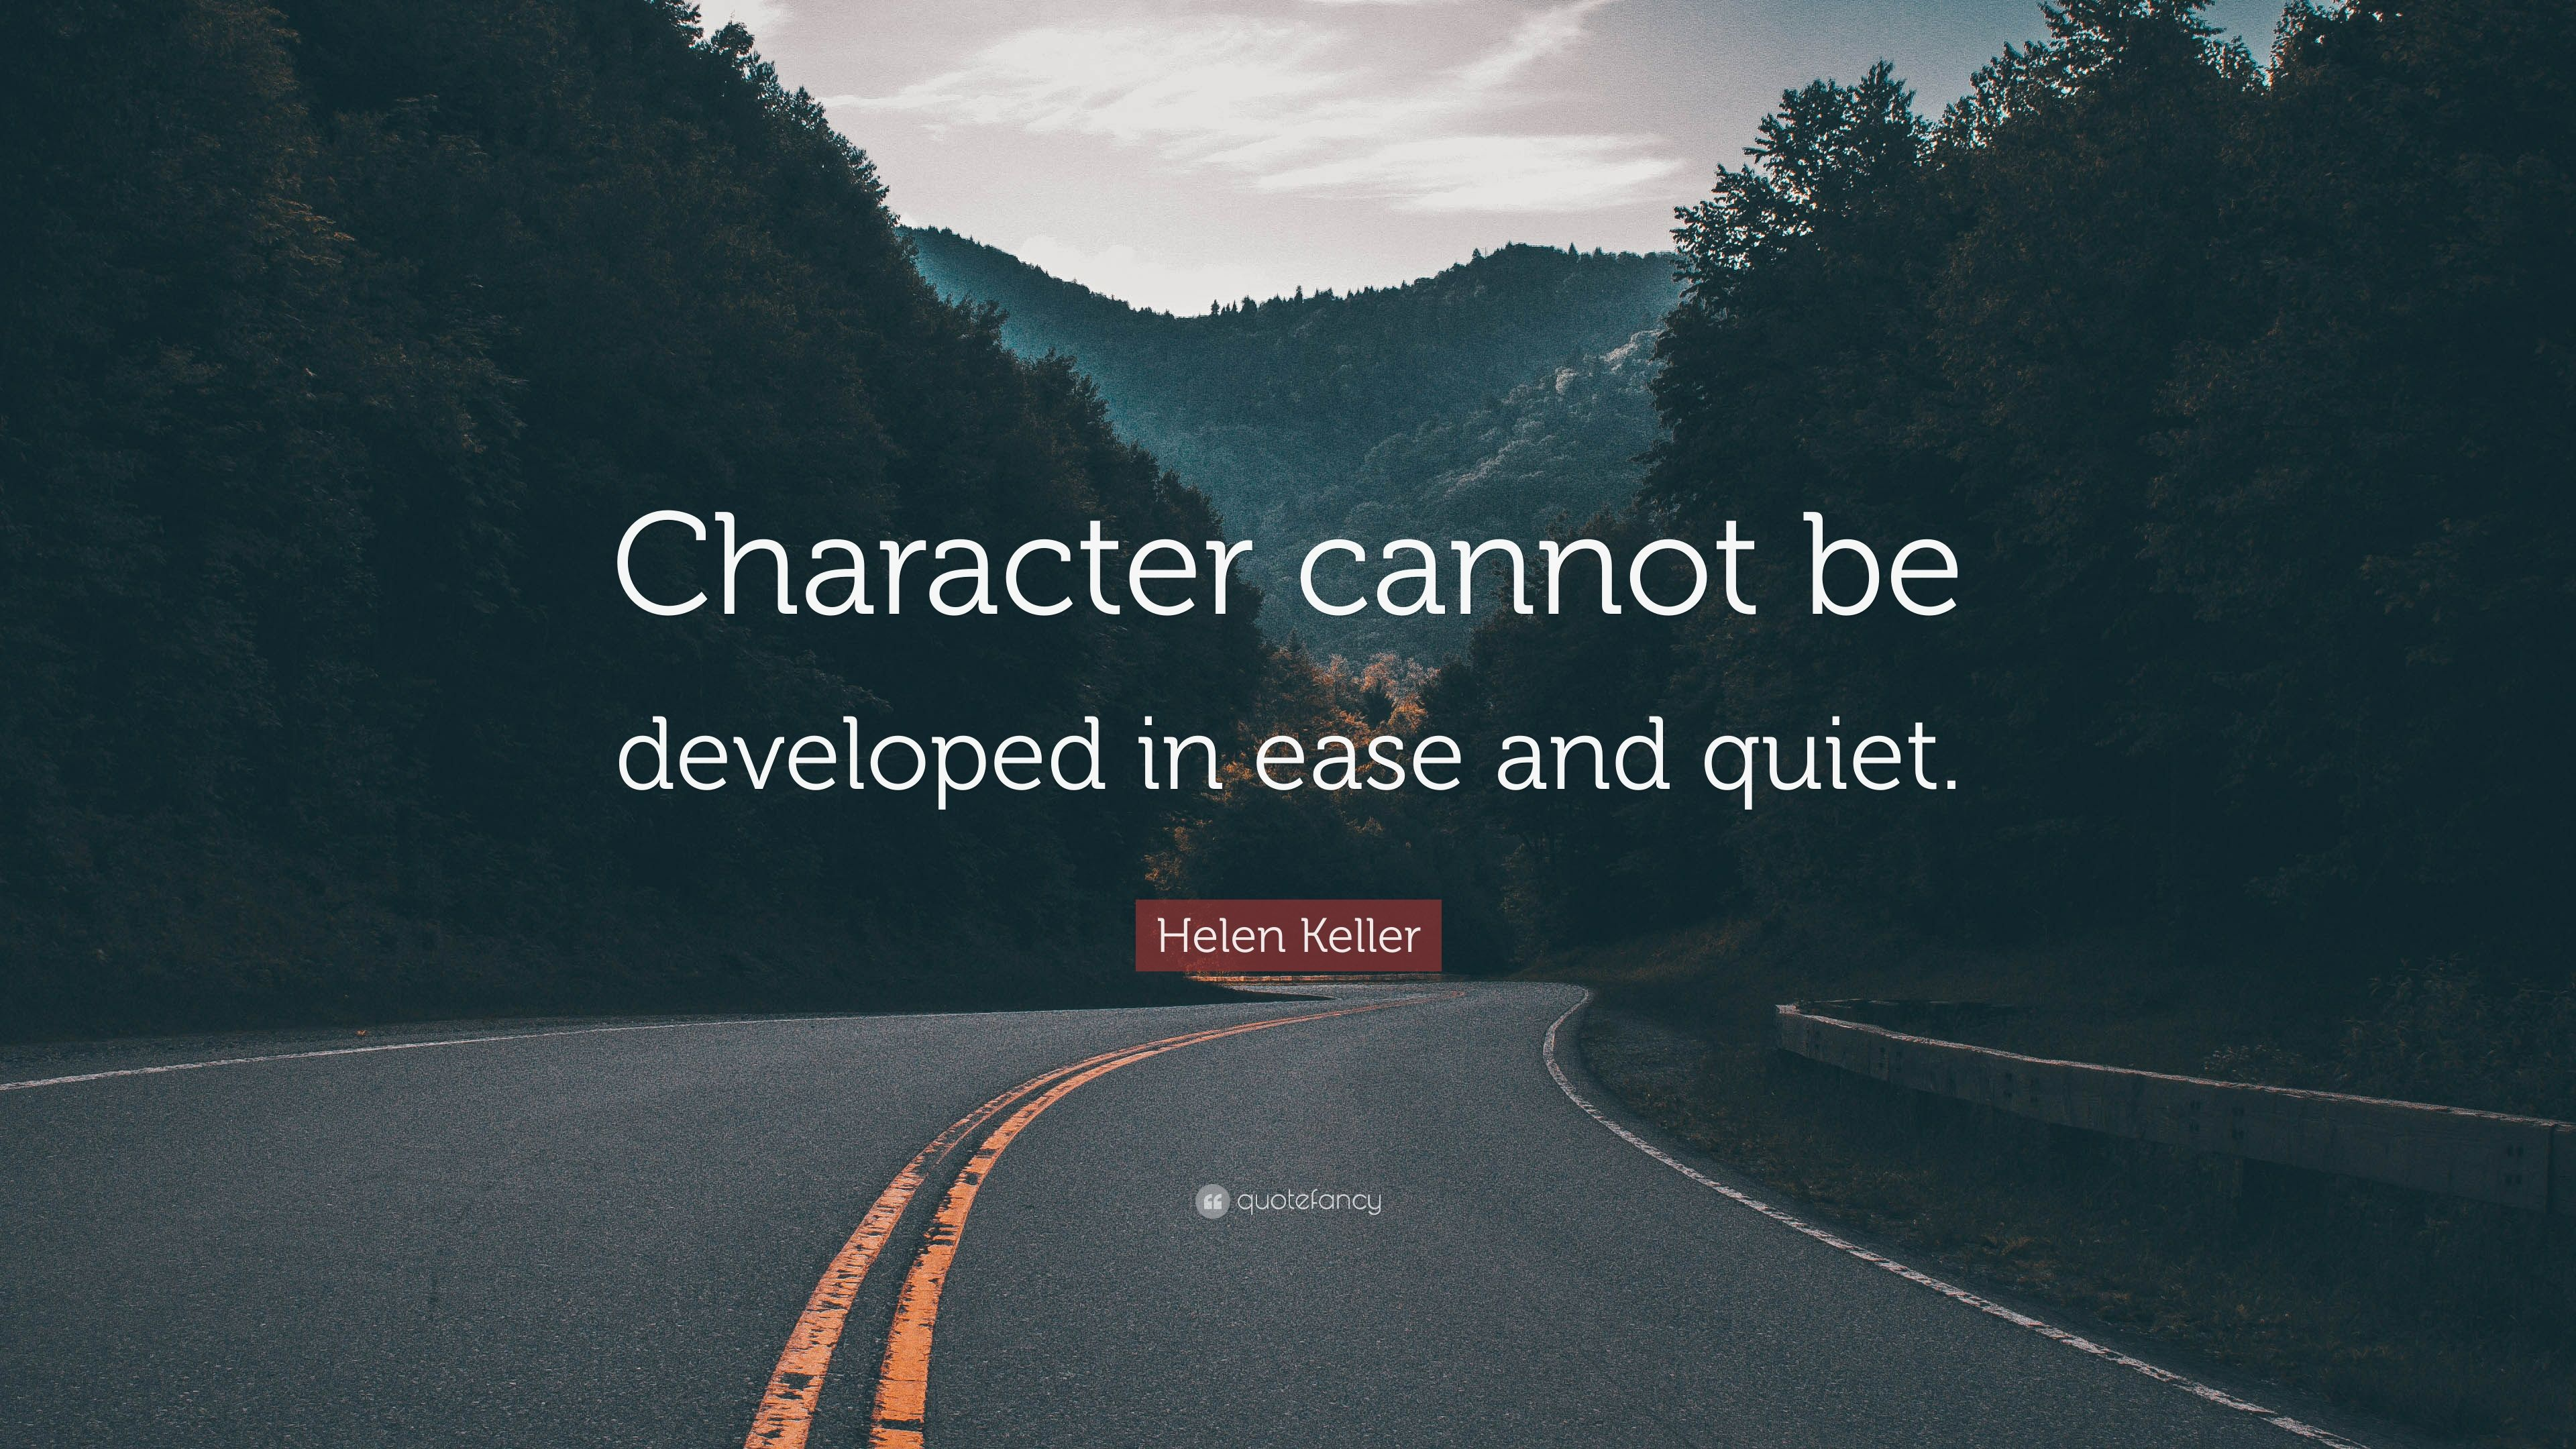 Helen keller quote character cannot be developed in ease and quiet helen keller quote character cannot be developed in ease and quiet altavistaventures